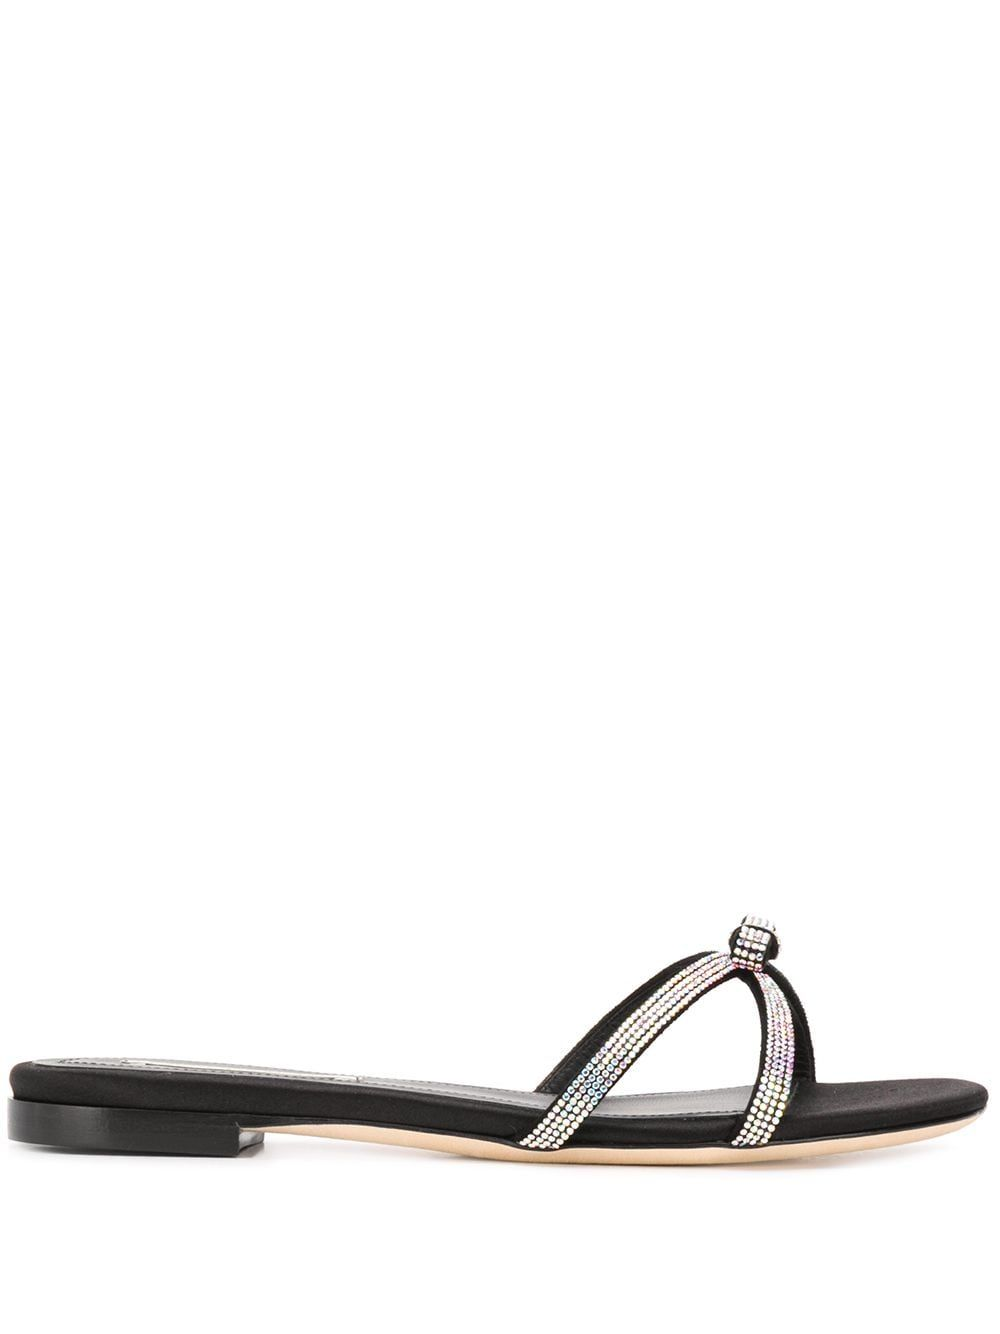 Marco De Vincenzo BLACK LEATHER SANDALS